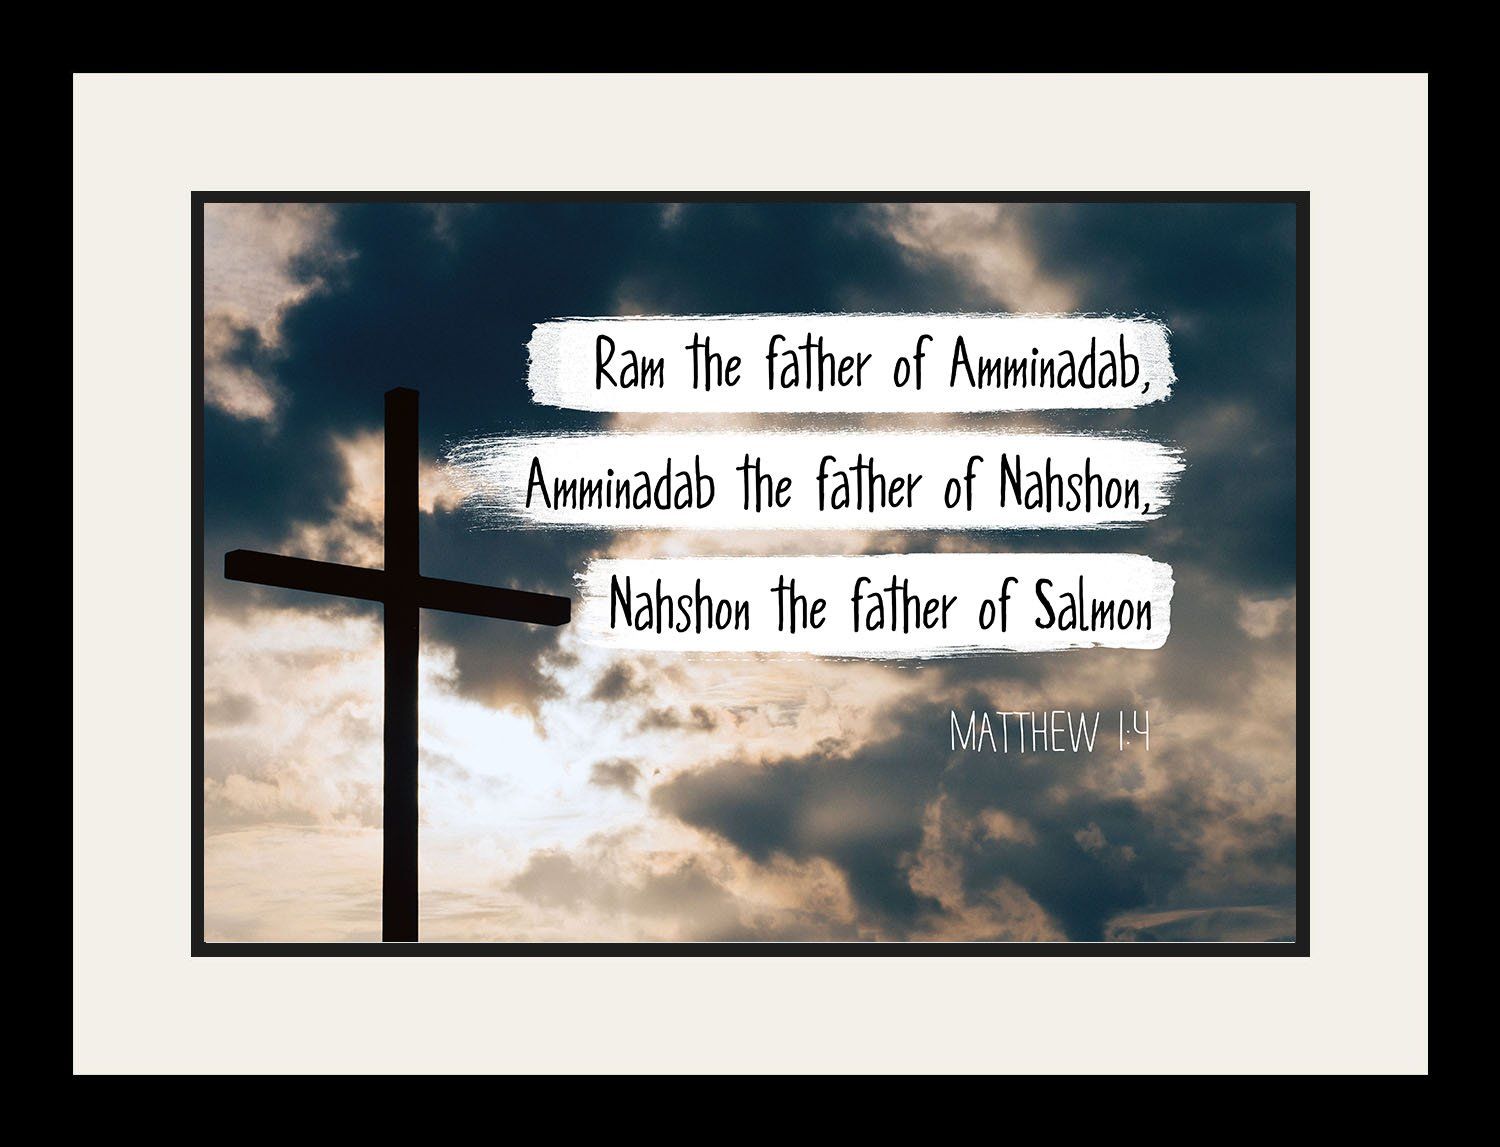 Matthew 1:4 Ram the father of Amminadab, - Christian Poster, Print, Picture or Framed Wall Art Decor - Bible Verse Collection - Religious Gift for Holidays Christmas Baptism (19x25 Framed)